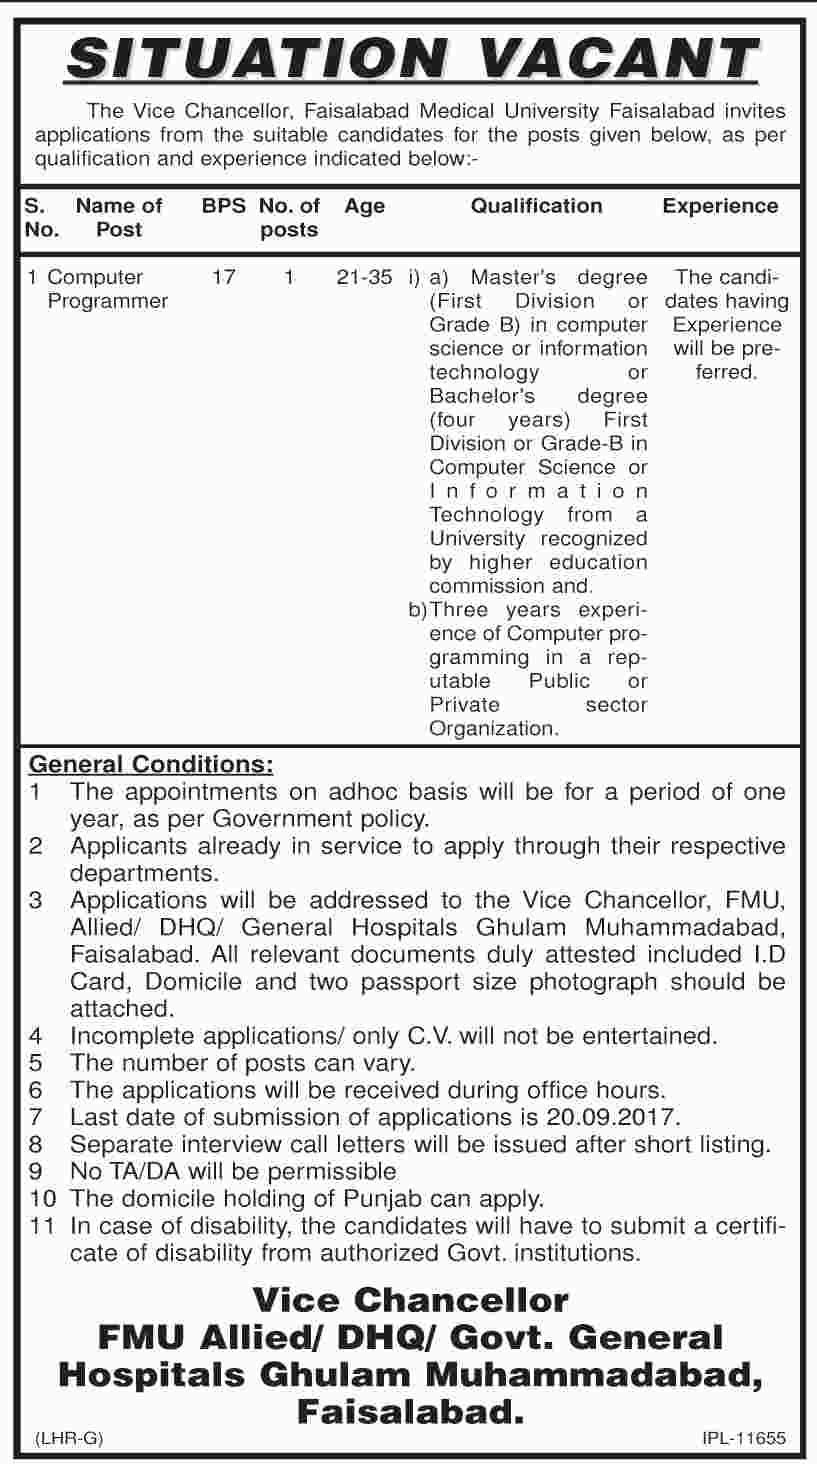 Medical University Jobs  In Faisalabad For Computer Programmer